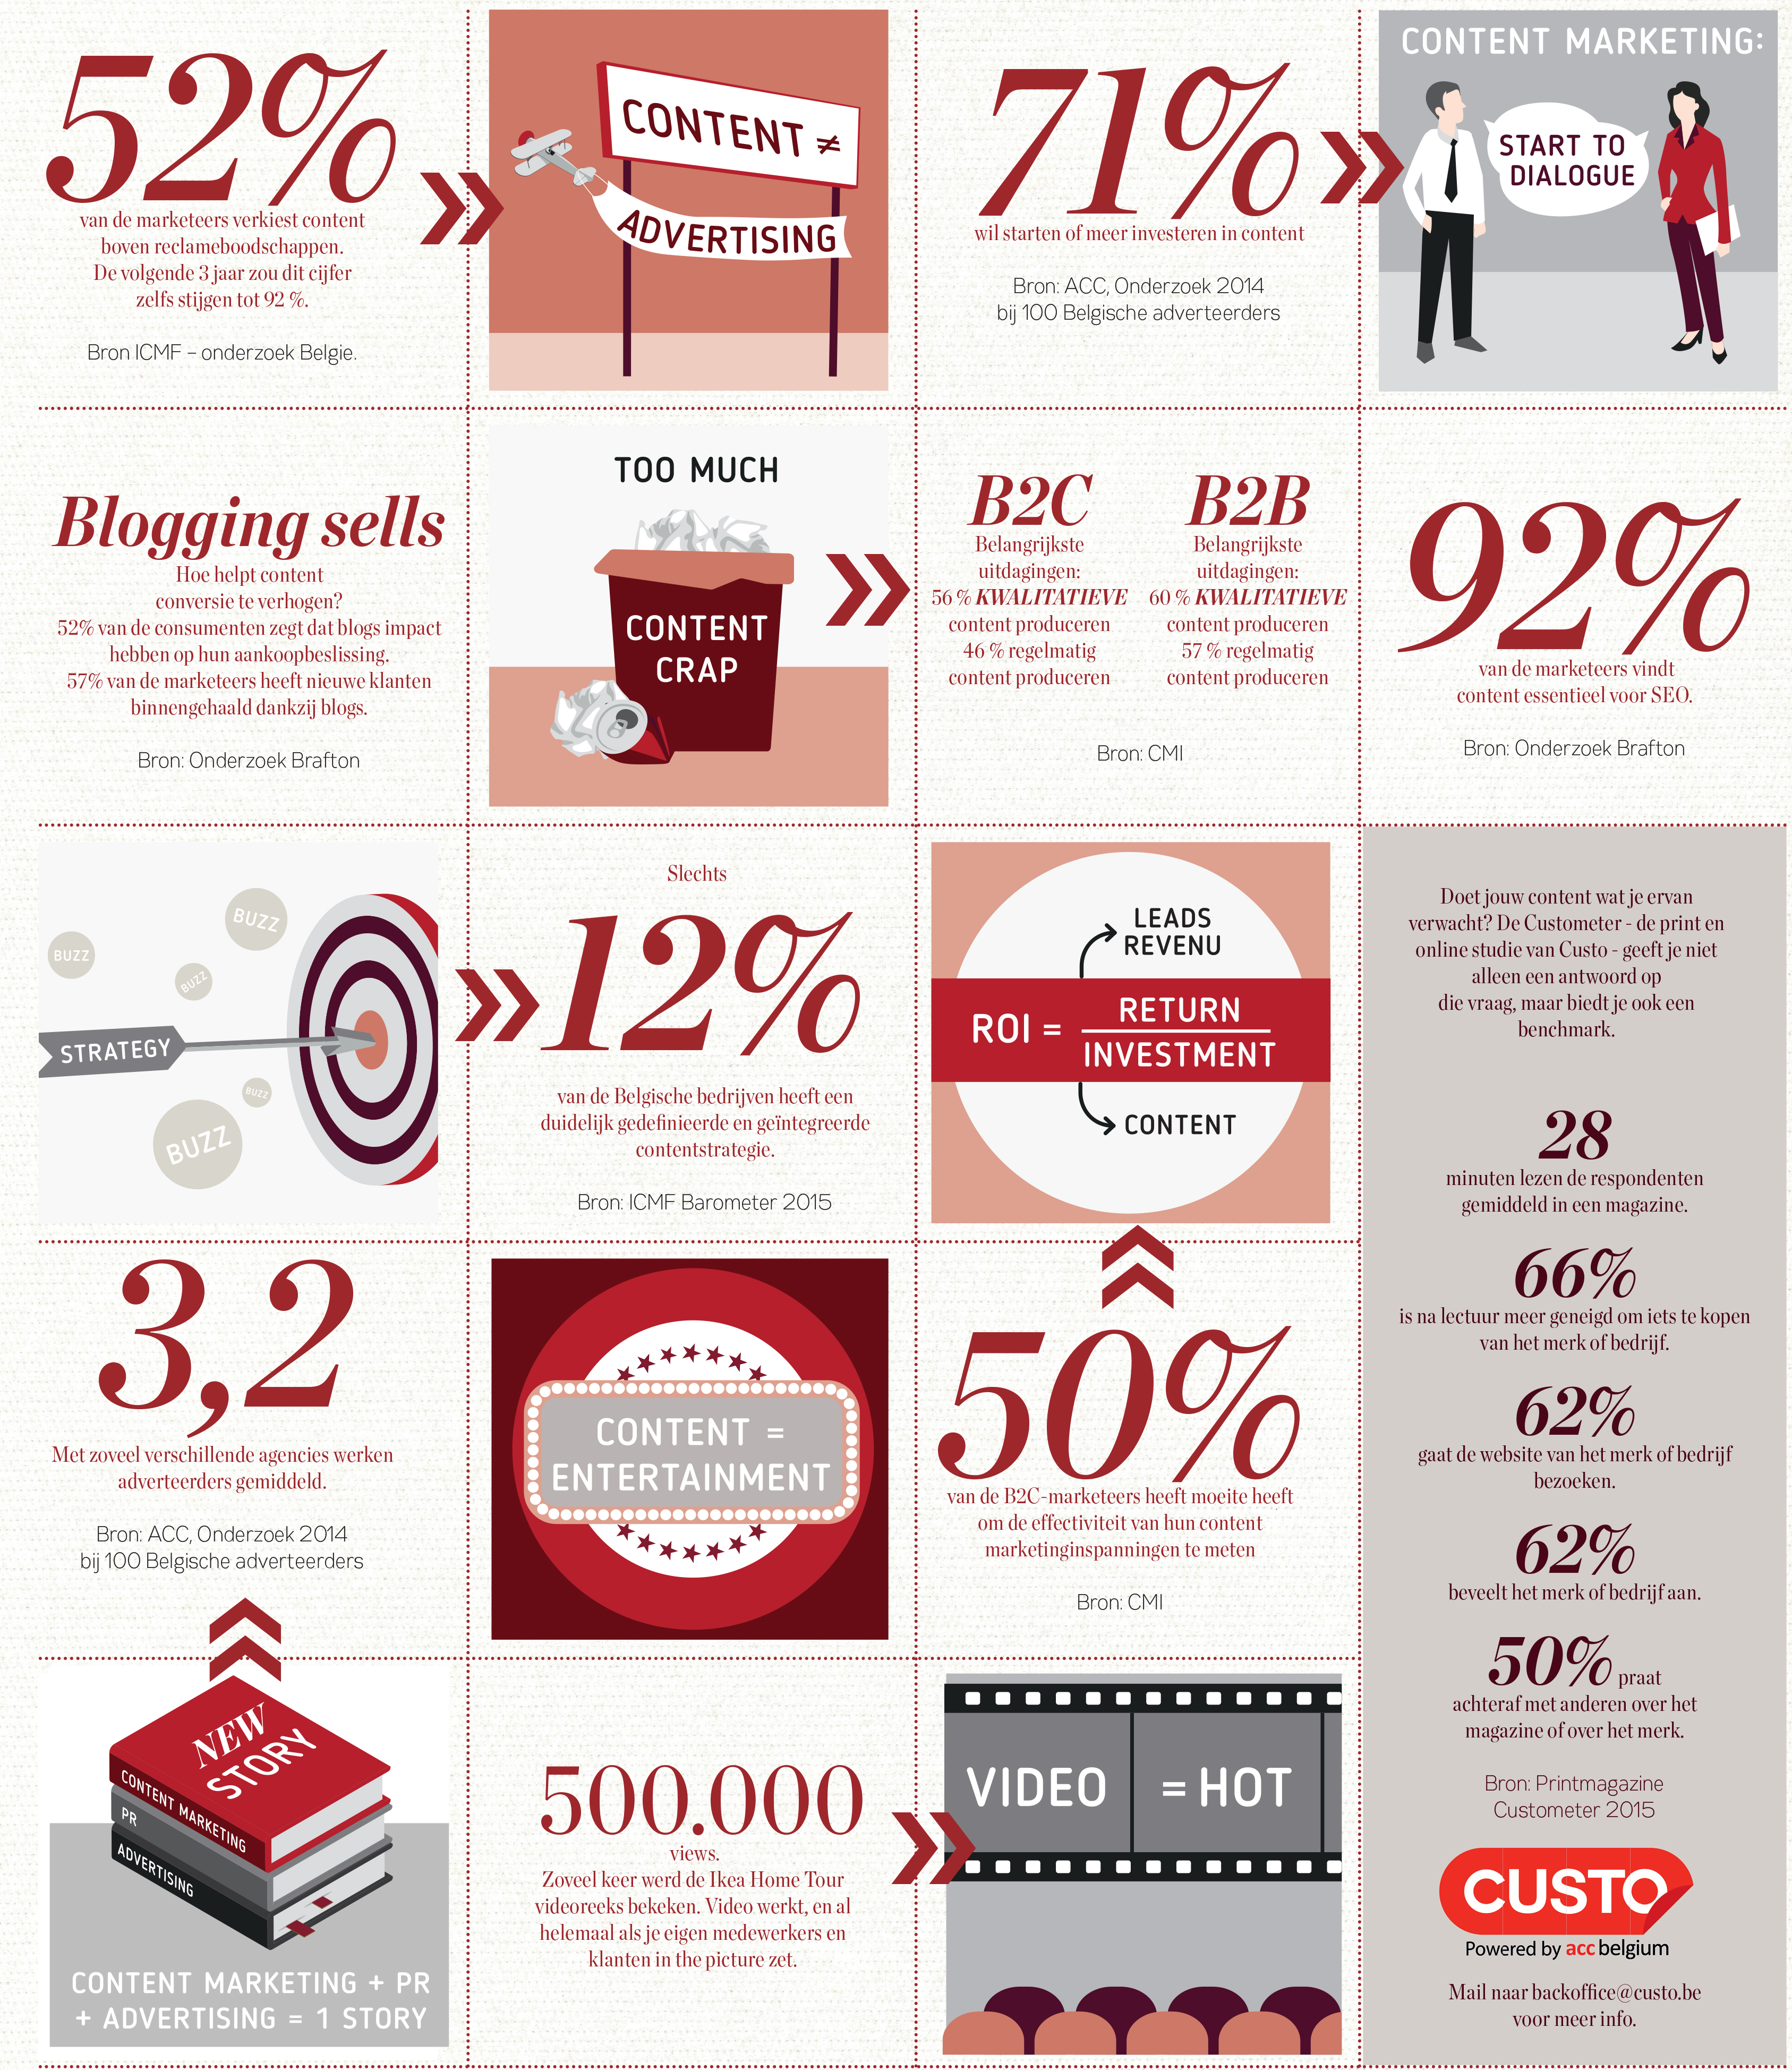 Custo content marketing research facts figures